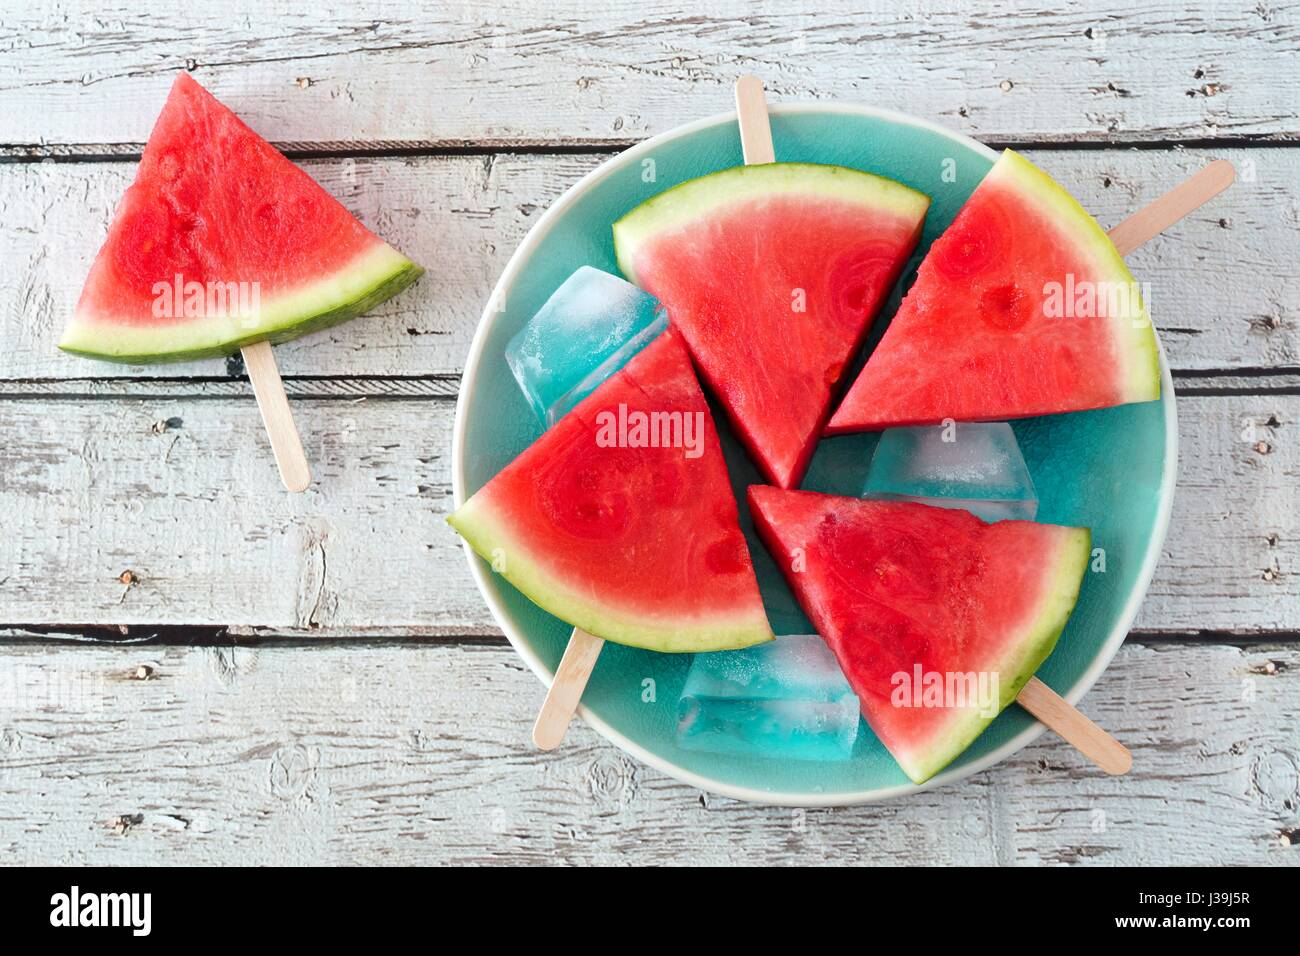 Watermelon slice popsicles on a vintage blue plate and rustic wood background - Stock Image